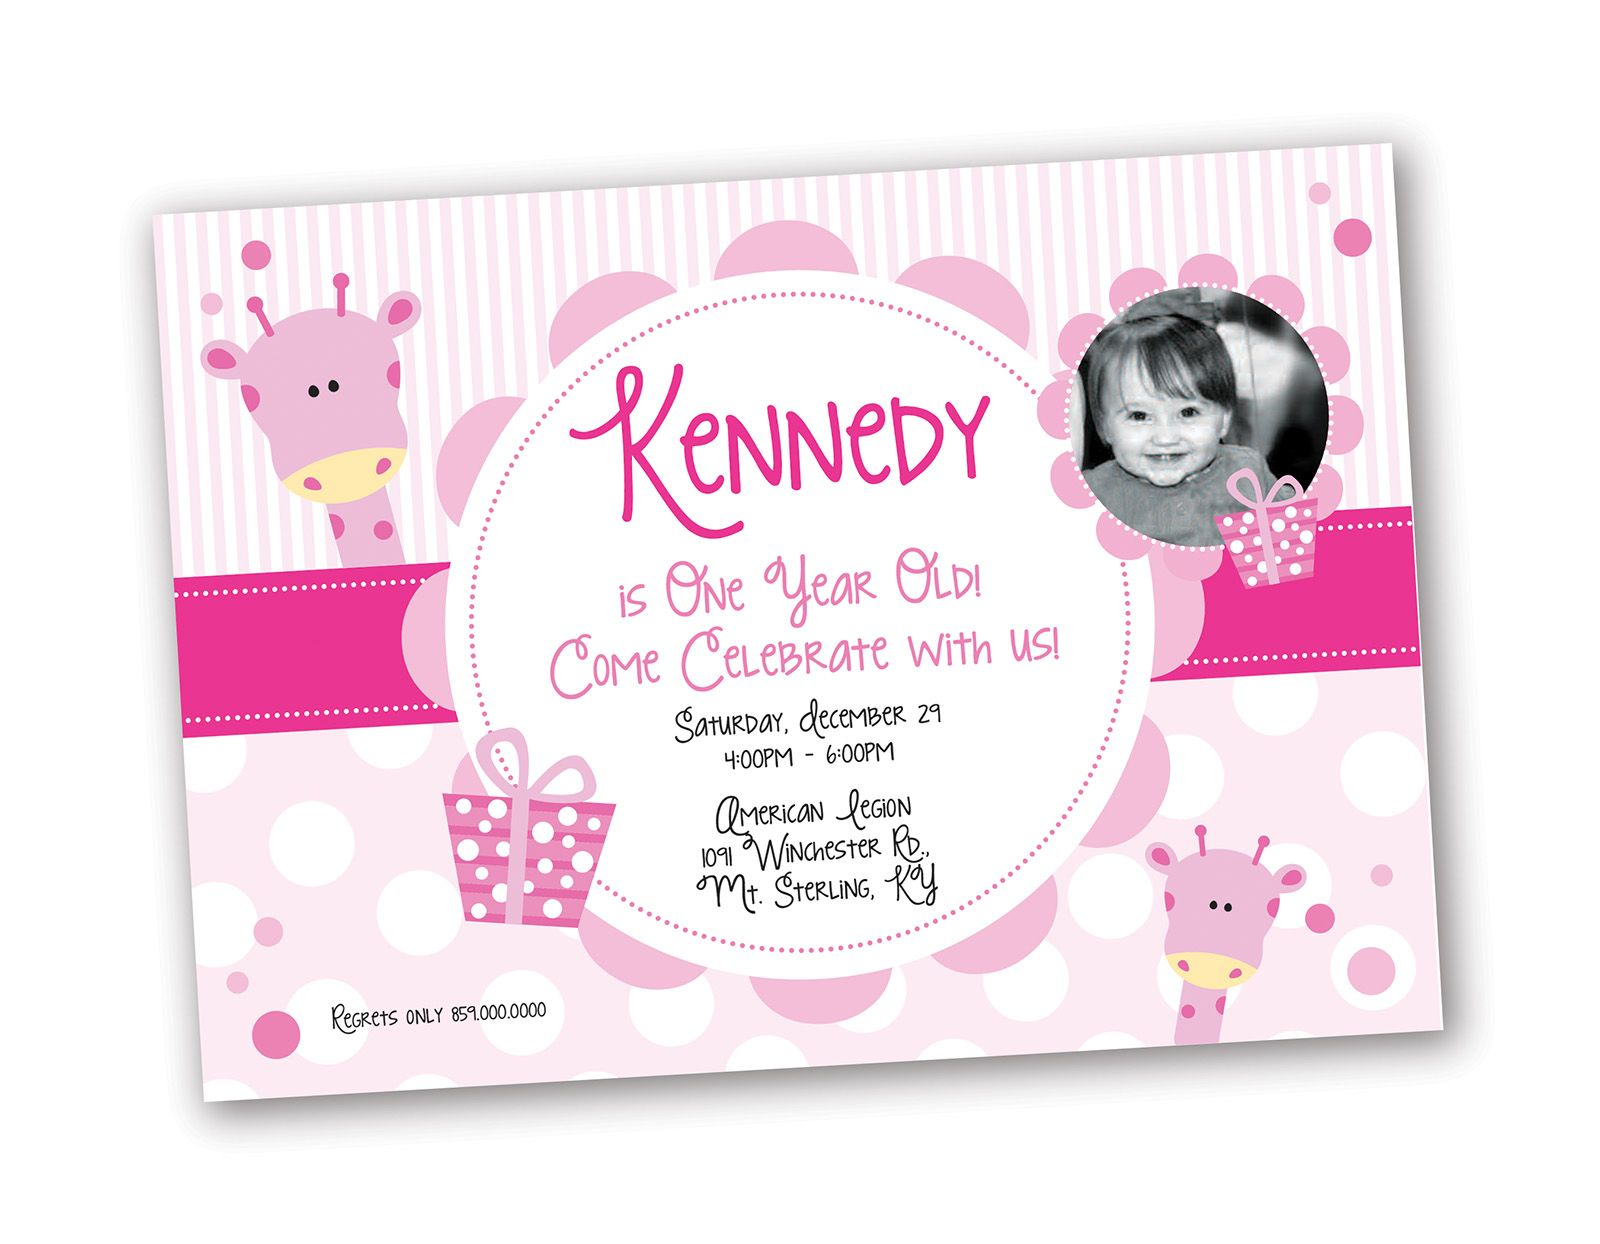 year old girl birthday invitation giraffe theme design  designs, invitation samples